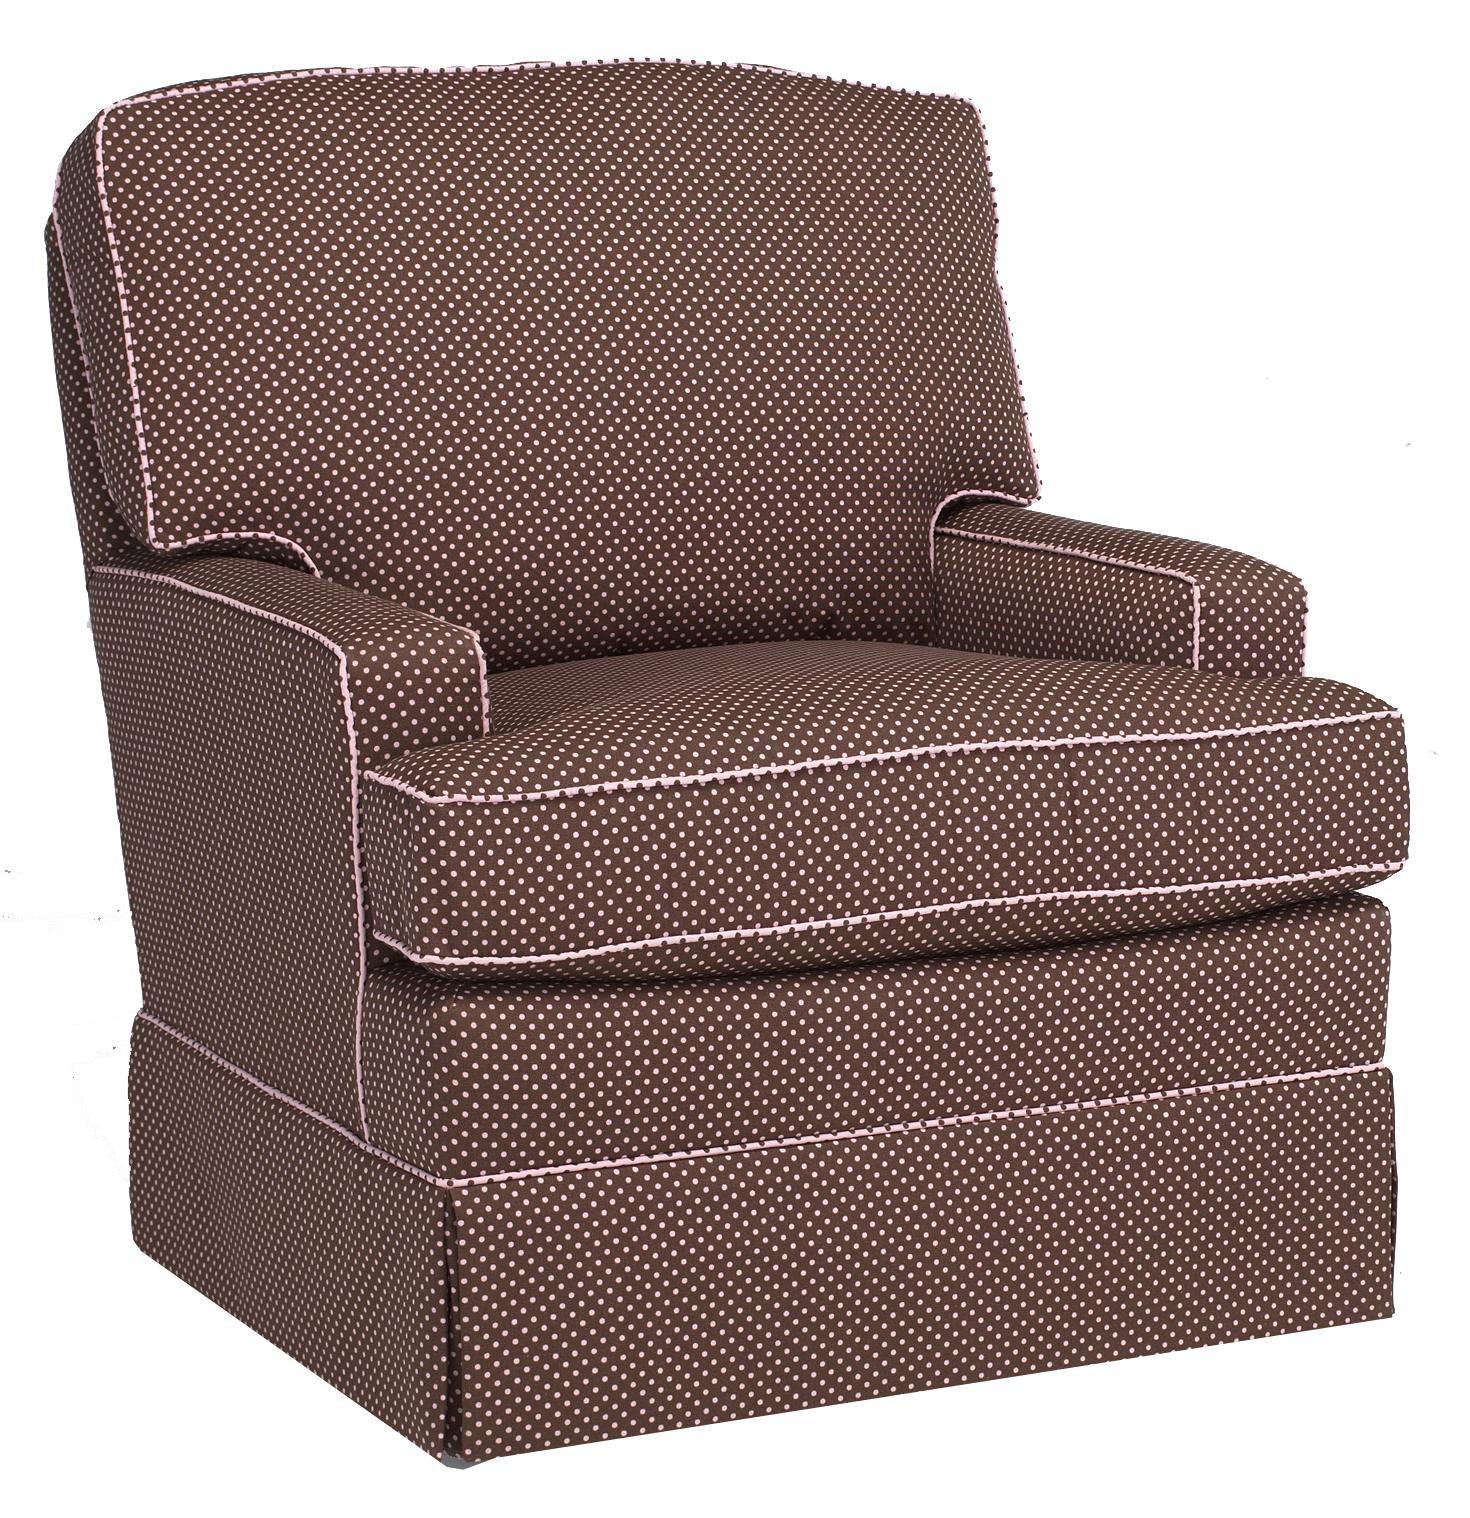 Storytime Swivel Chairs and Ottomans Rena Chair by Best Chairs Storytime Series at Best Home Furnishings